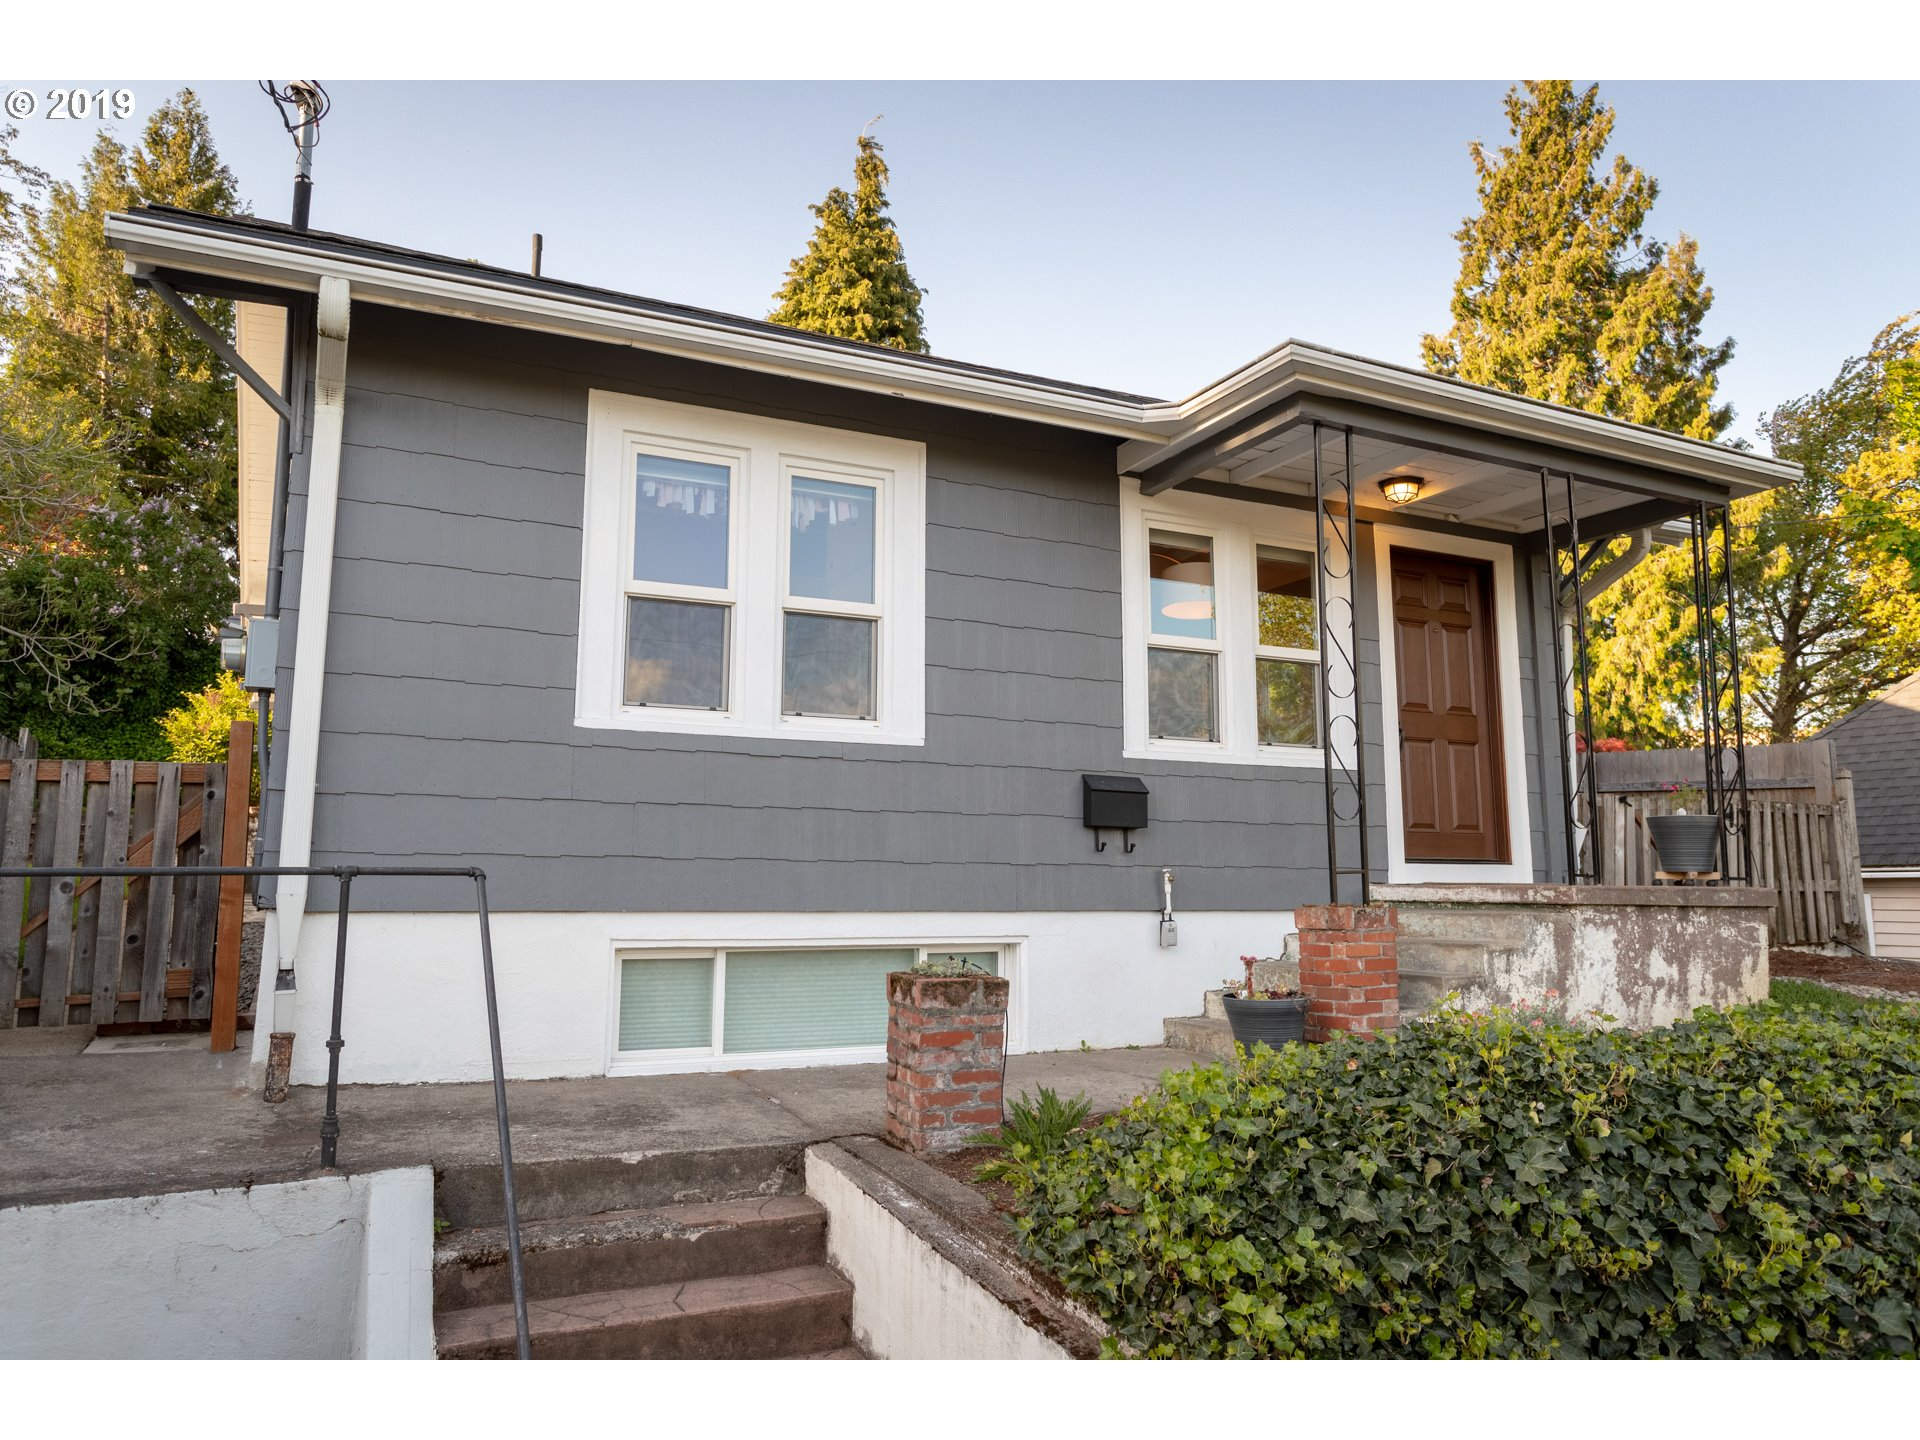 4805 NE Flanders Street Portland Home Listings - The Rob Levy Team Real Estate